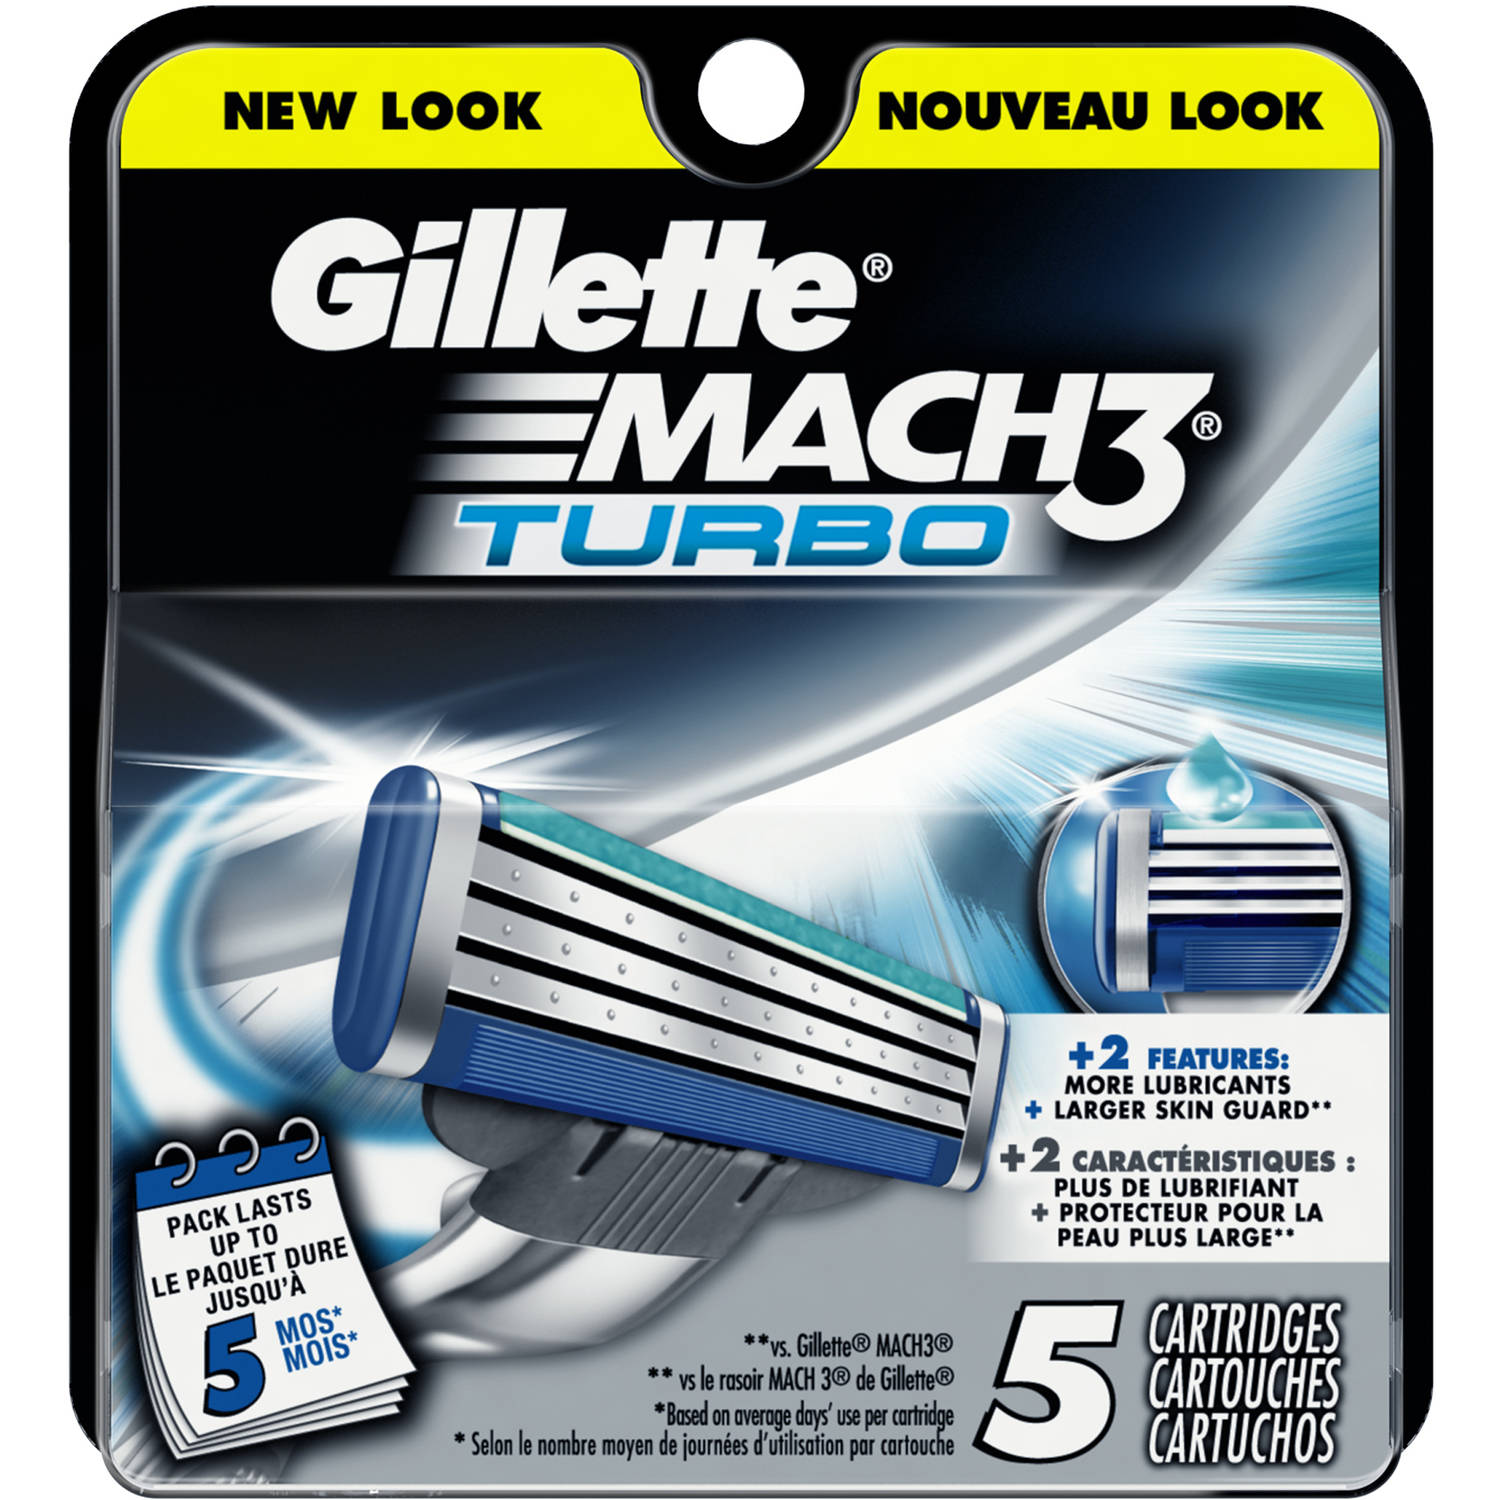 Gillette Mach3 Turbo Cartridges, 5 count